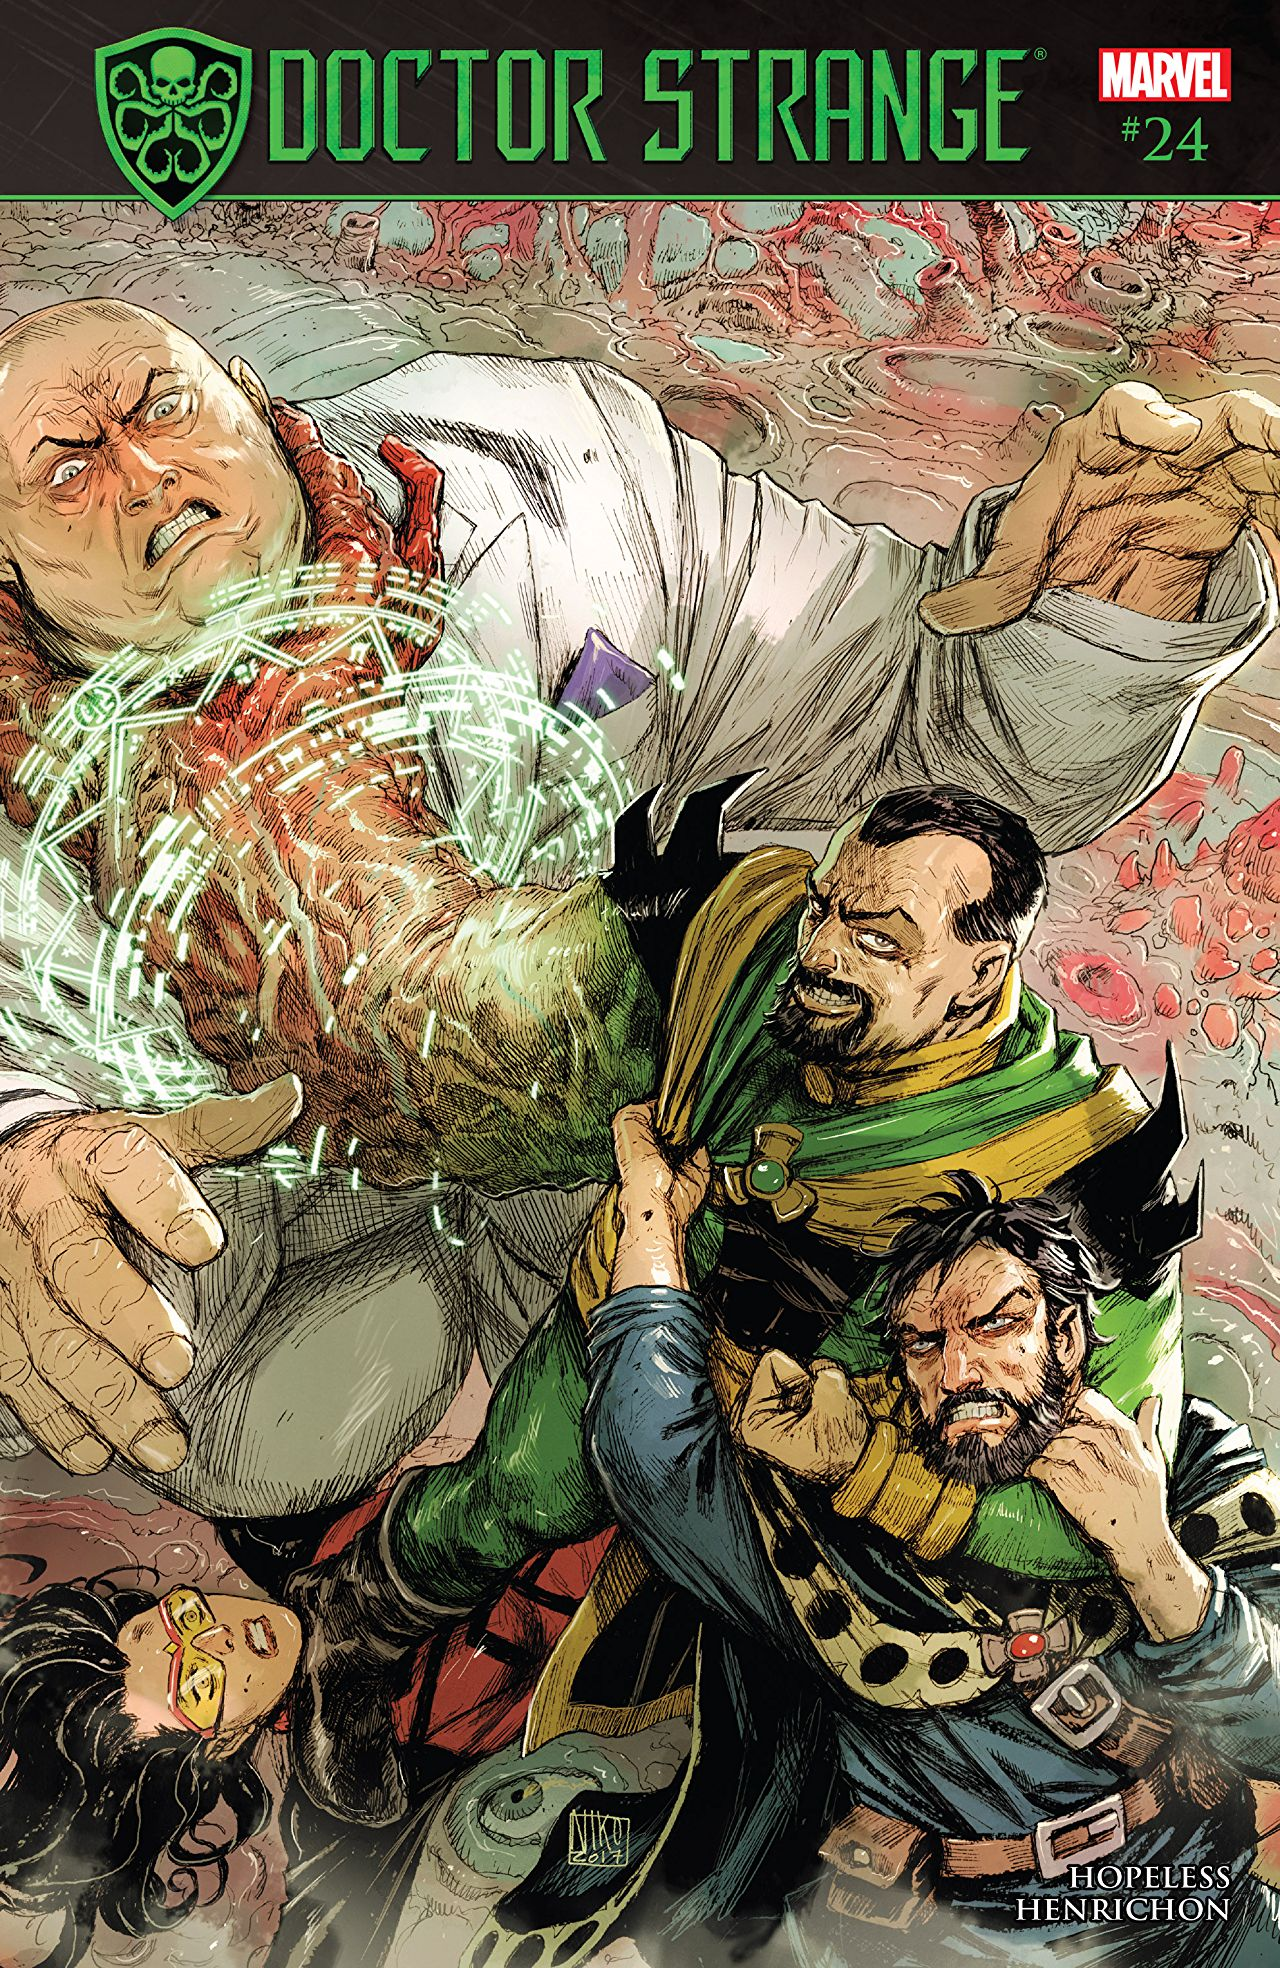 3 Reasons Why: A Doctor Strange movie should spin out of 'Doctor Strange Vol. 5: Secret Empire'